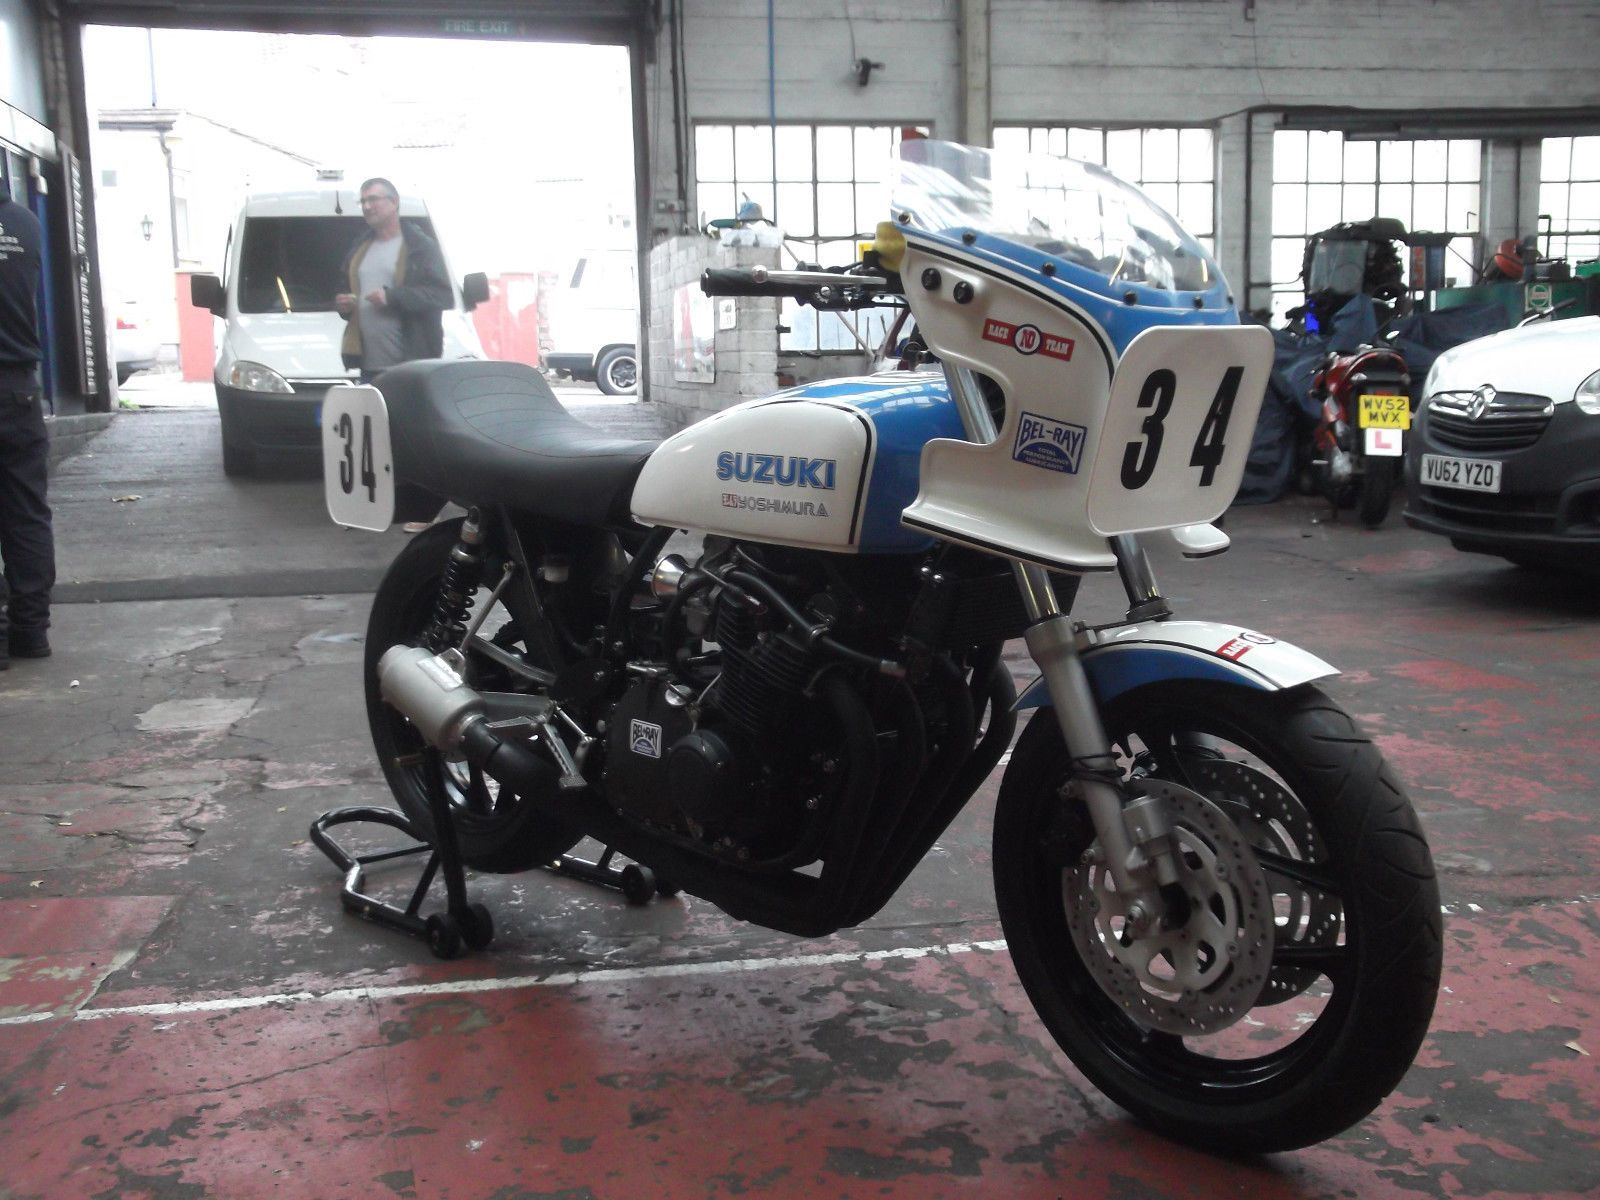 suzuki gs1000 classic race bike or parade etc | eBay